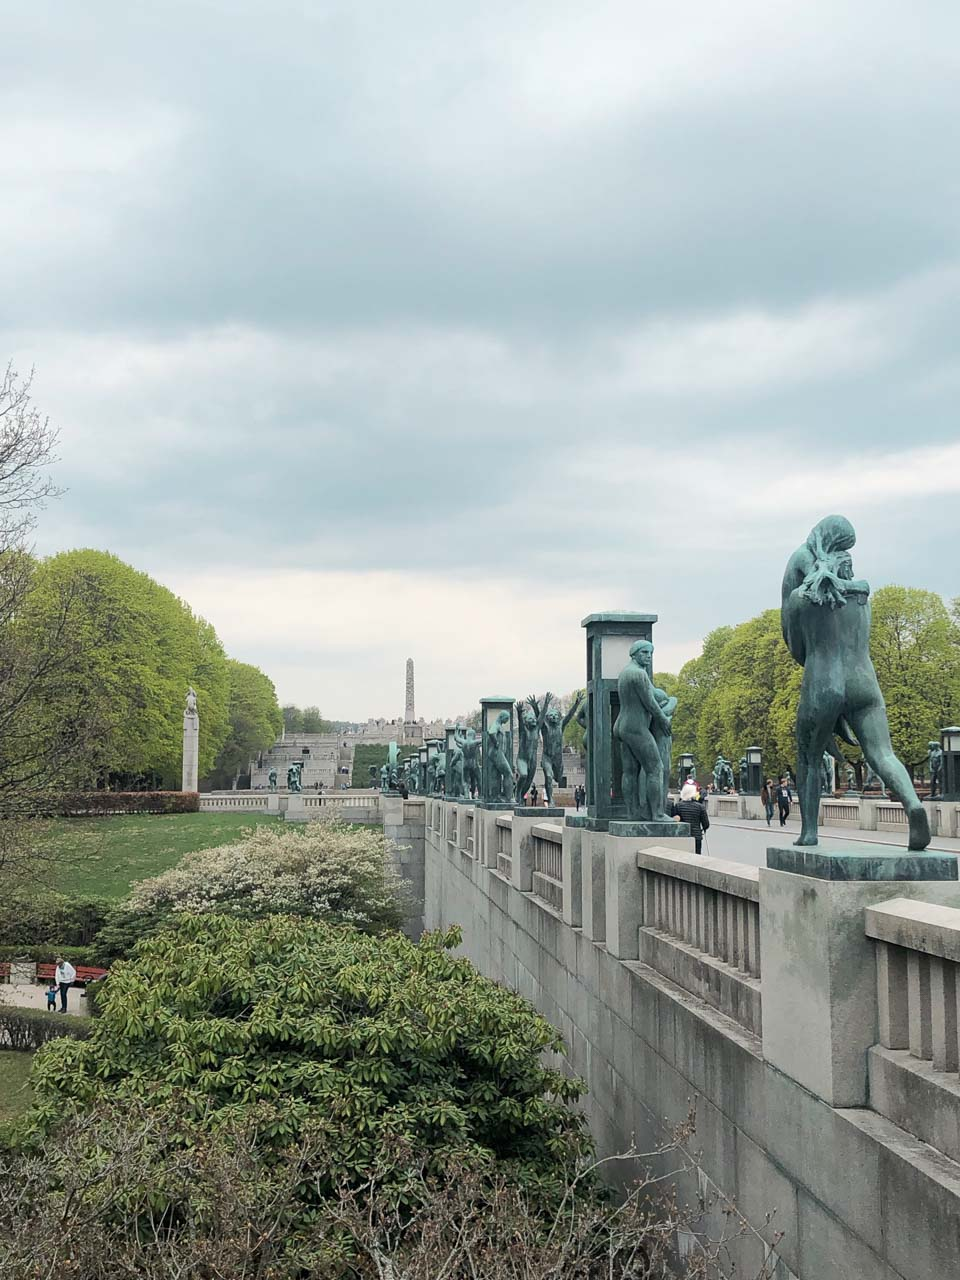 Sculptures in the Vigeland Sculpture Park in Oslo, Norway